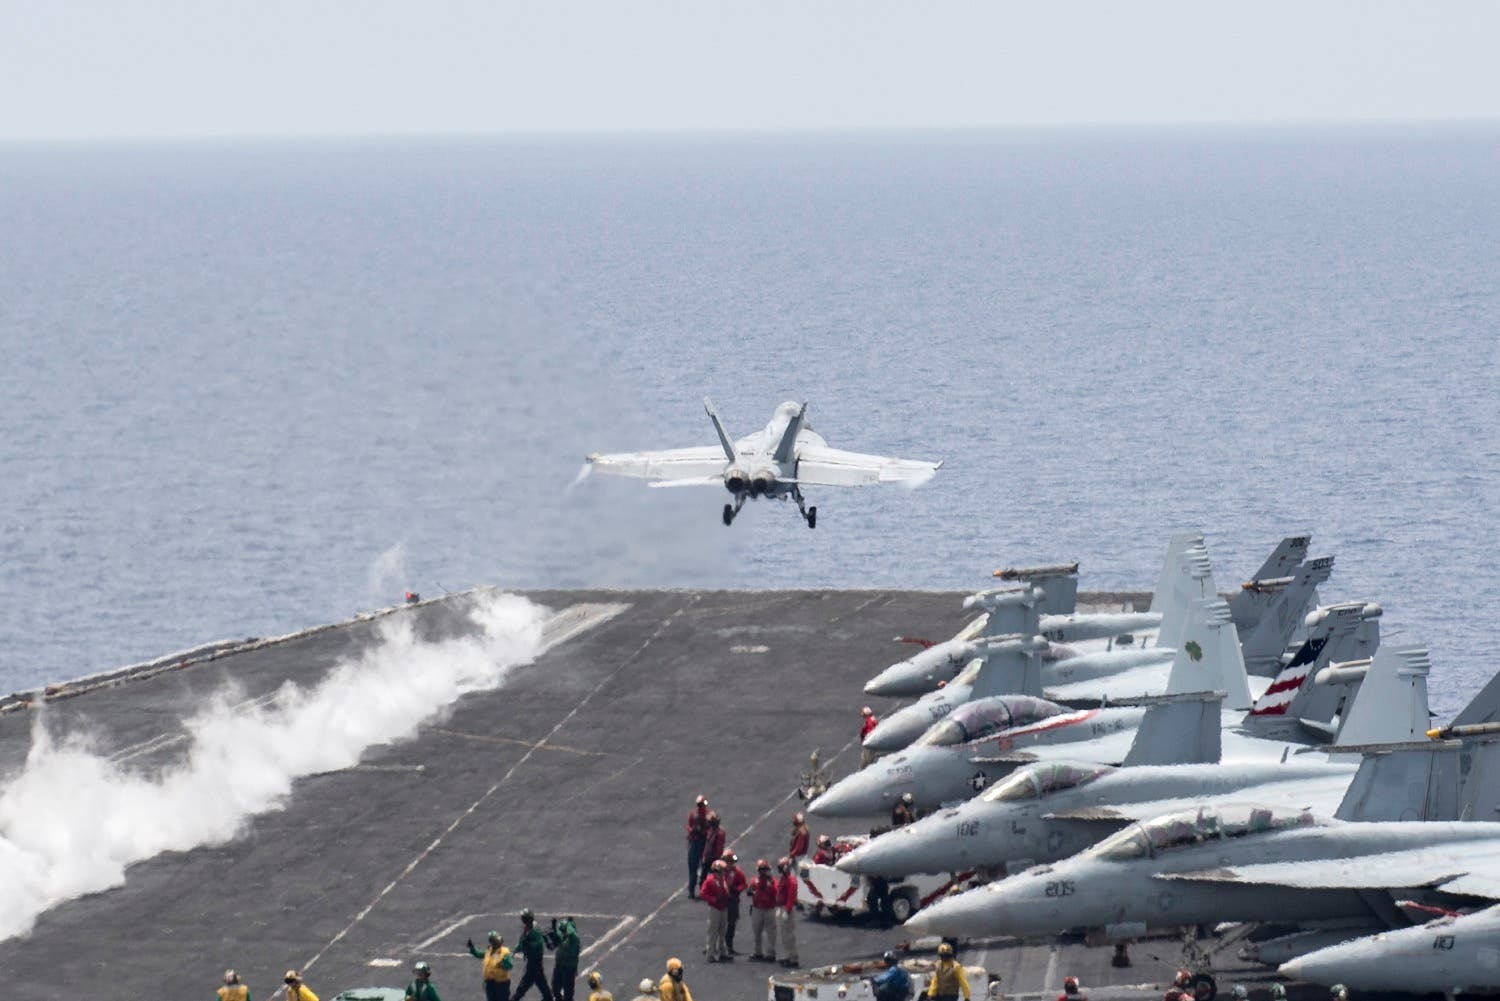 A U.S. Navy F/A-18E Super Hornet fighter jet launches from the flight deck of the aircraft carrier USS Harry S. Truman in the Mediterranean Sea in a photo released by the US Navy June 3, 2016.